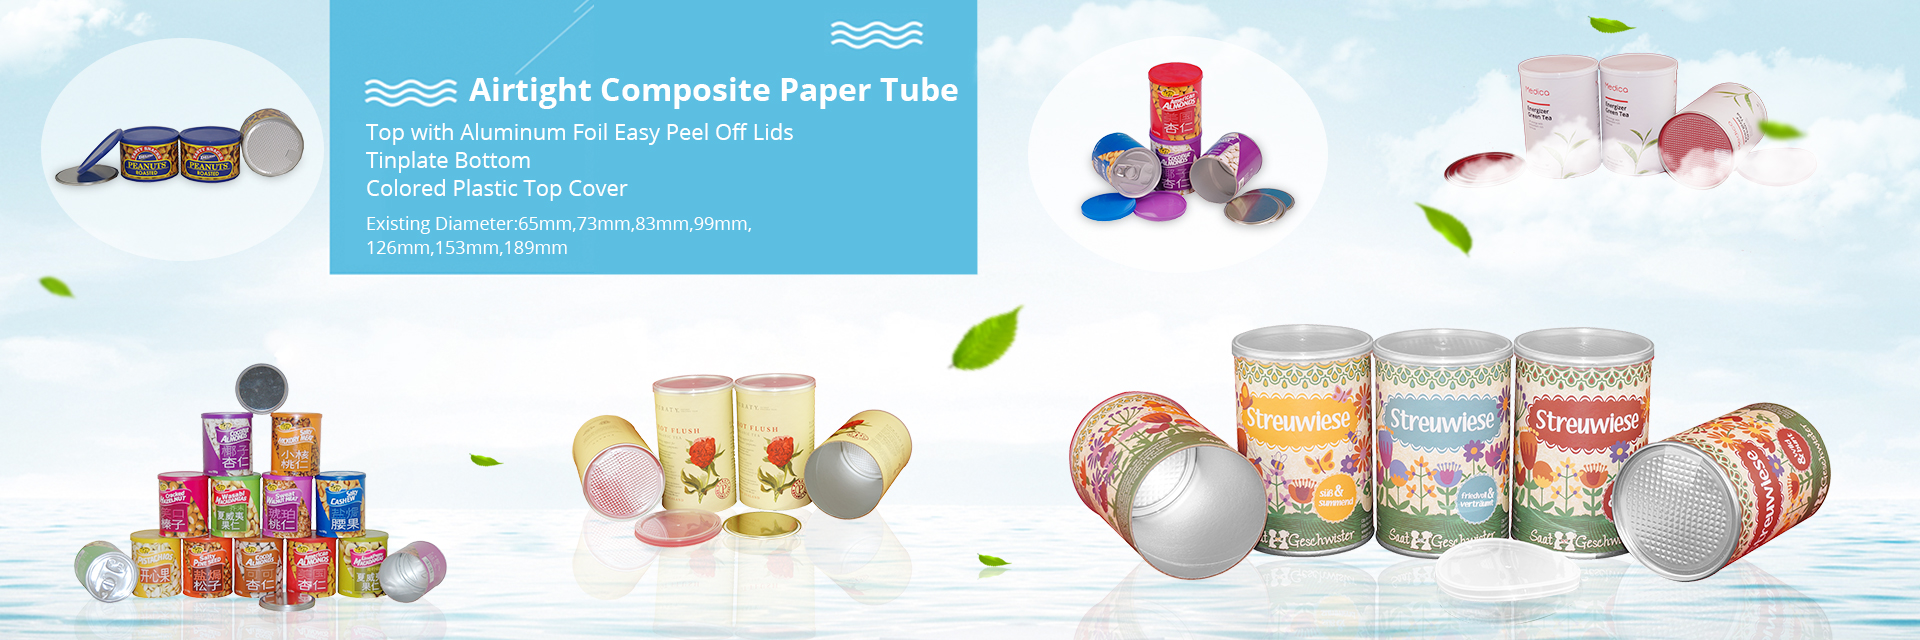 Good Airtight Composite Paper Tube